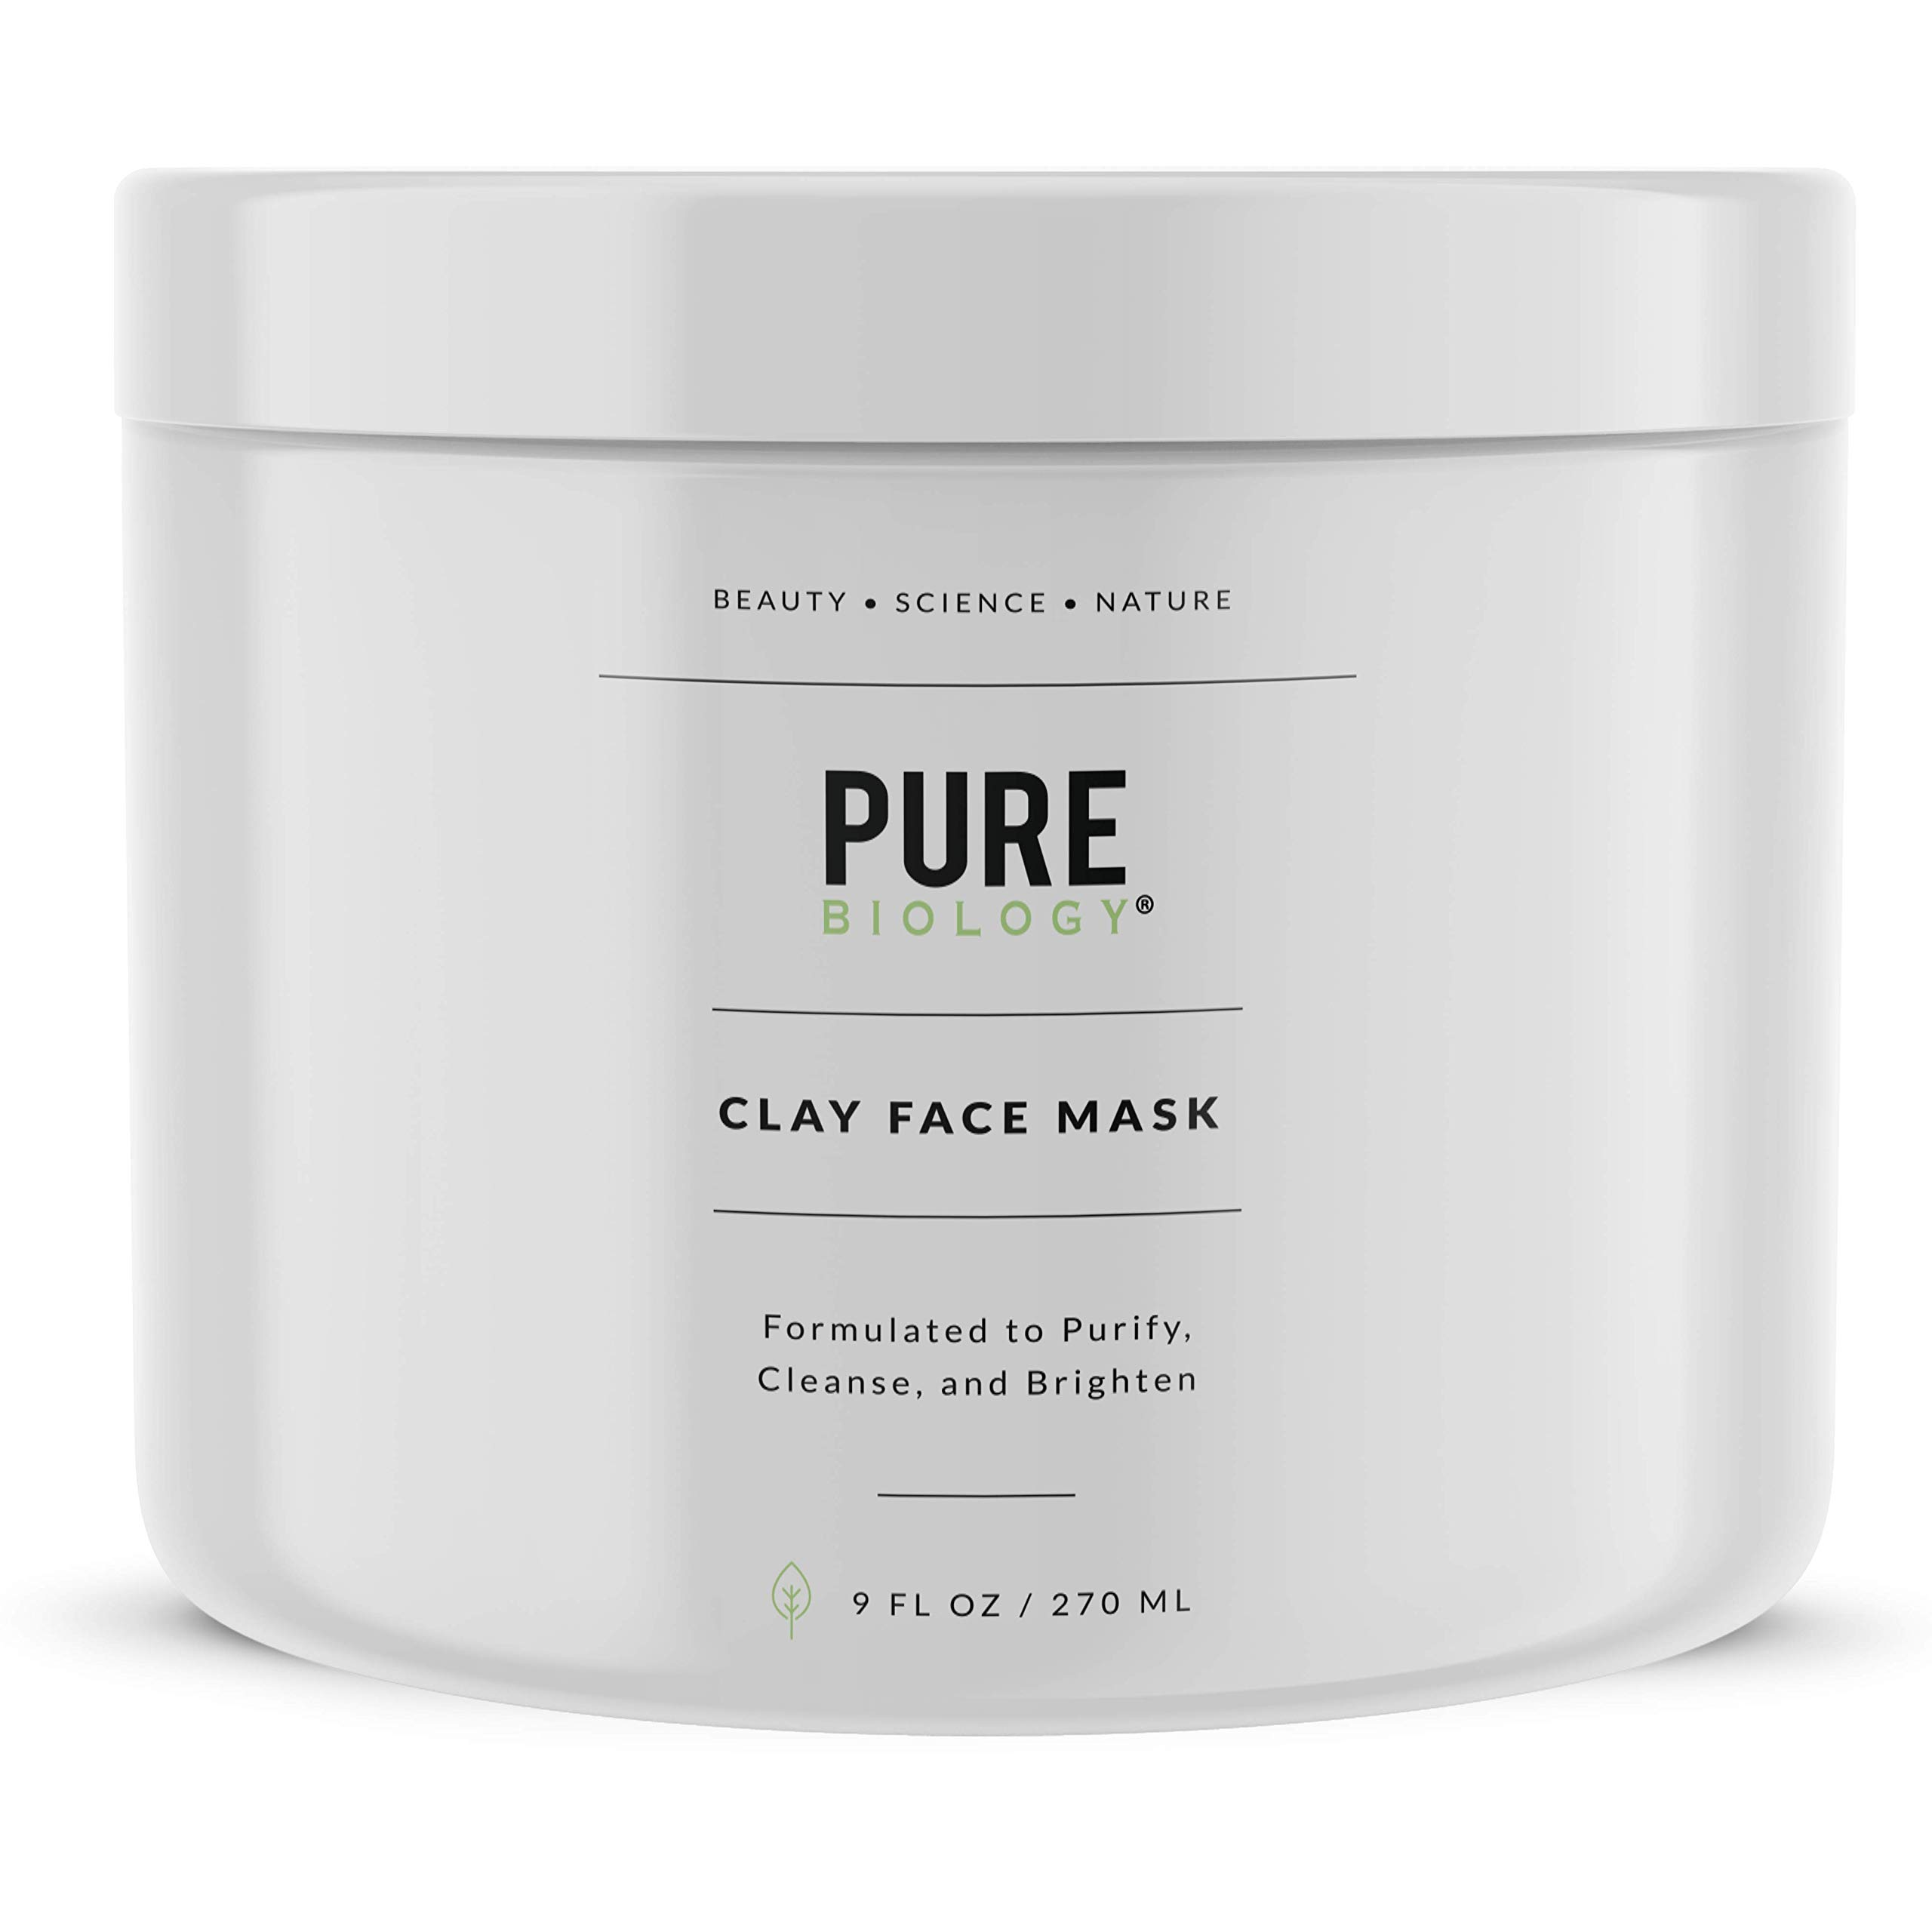 Premium Face Mask – Bentonite Clay, Retinol, Collagen, Kaolin, Pea Peptides, Vitamins B, C, E – Cleanse, Smooth & Minimize Deep Pores, Dark Spots, Blackheads & Acne Scars – Men & Women, All Skin Types